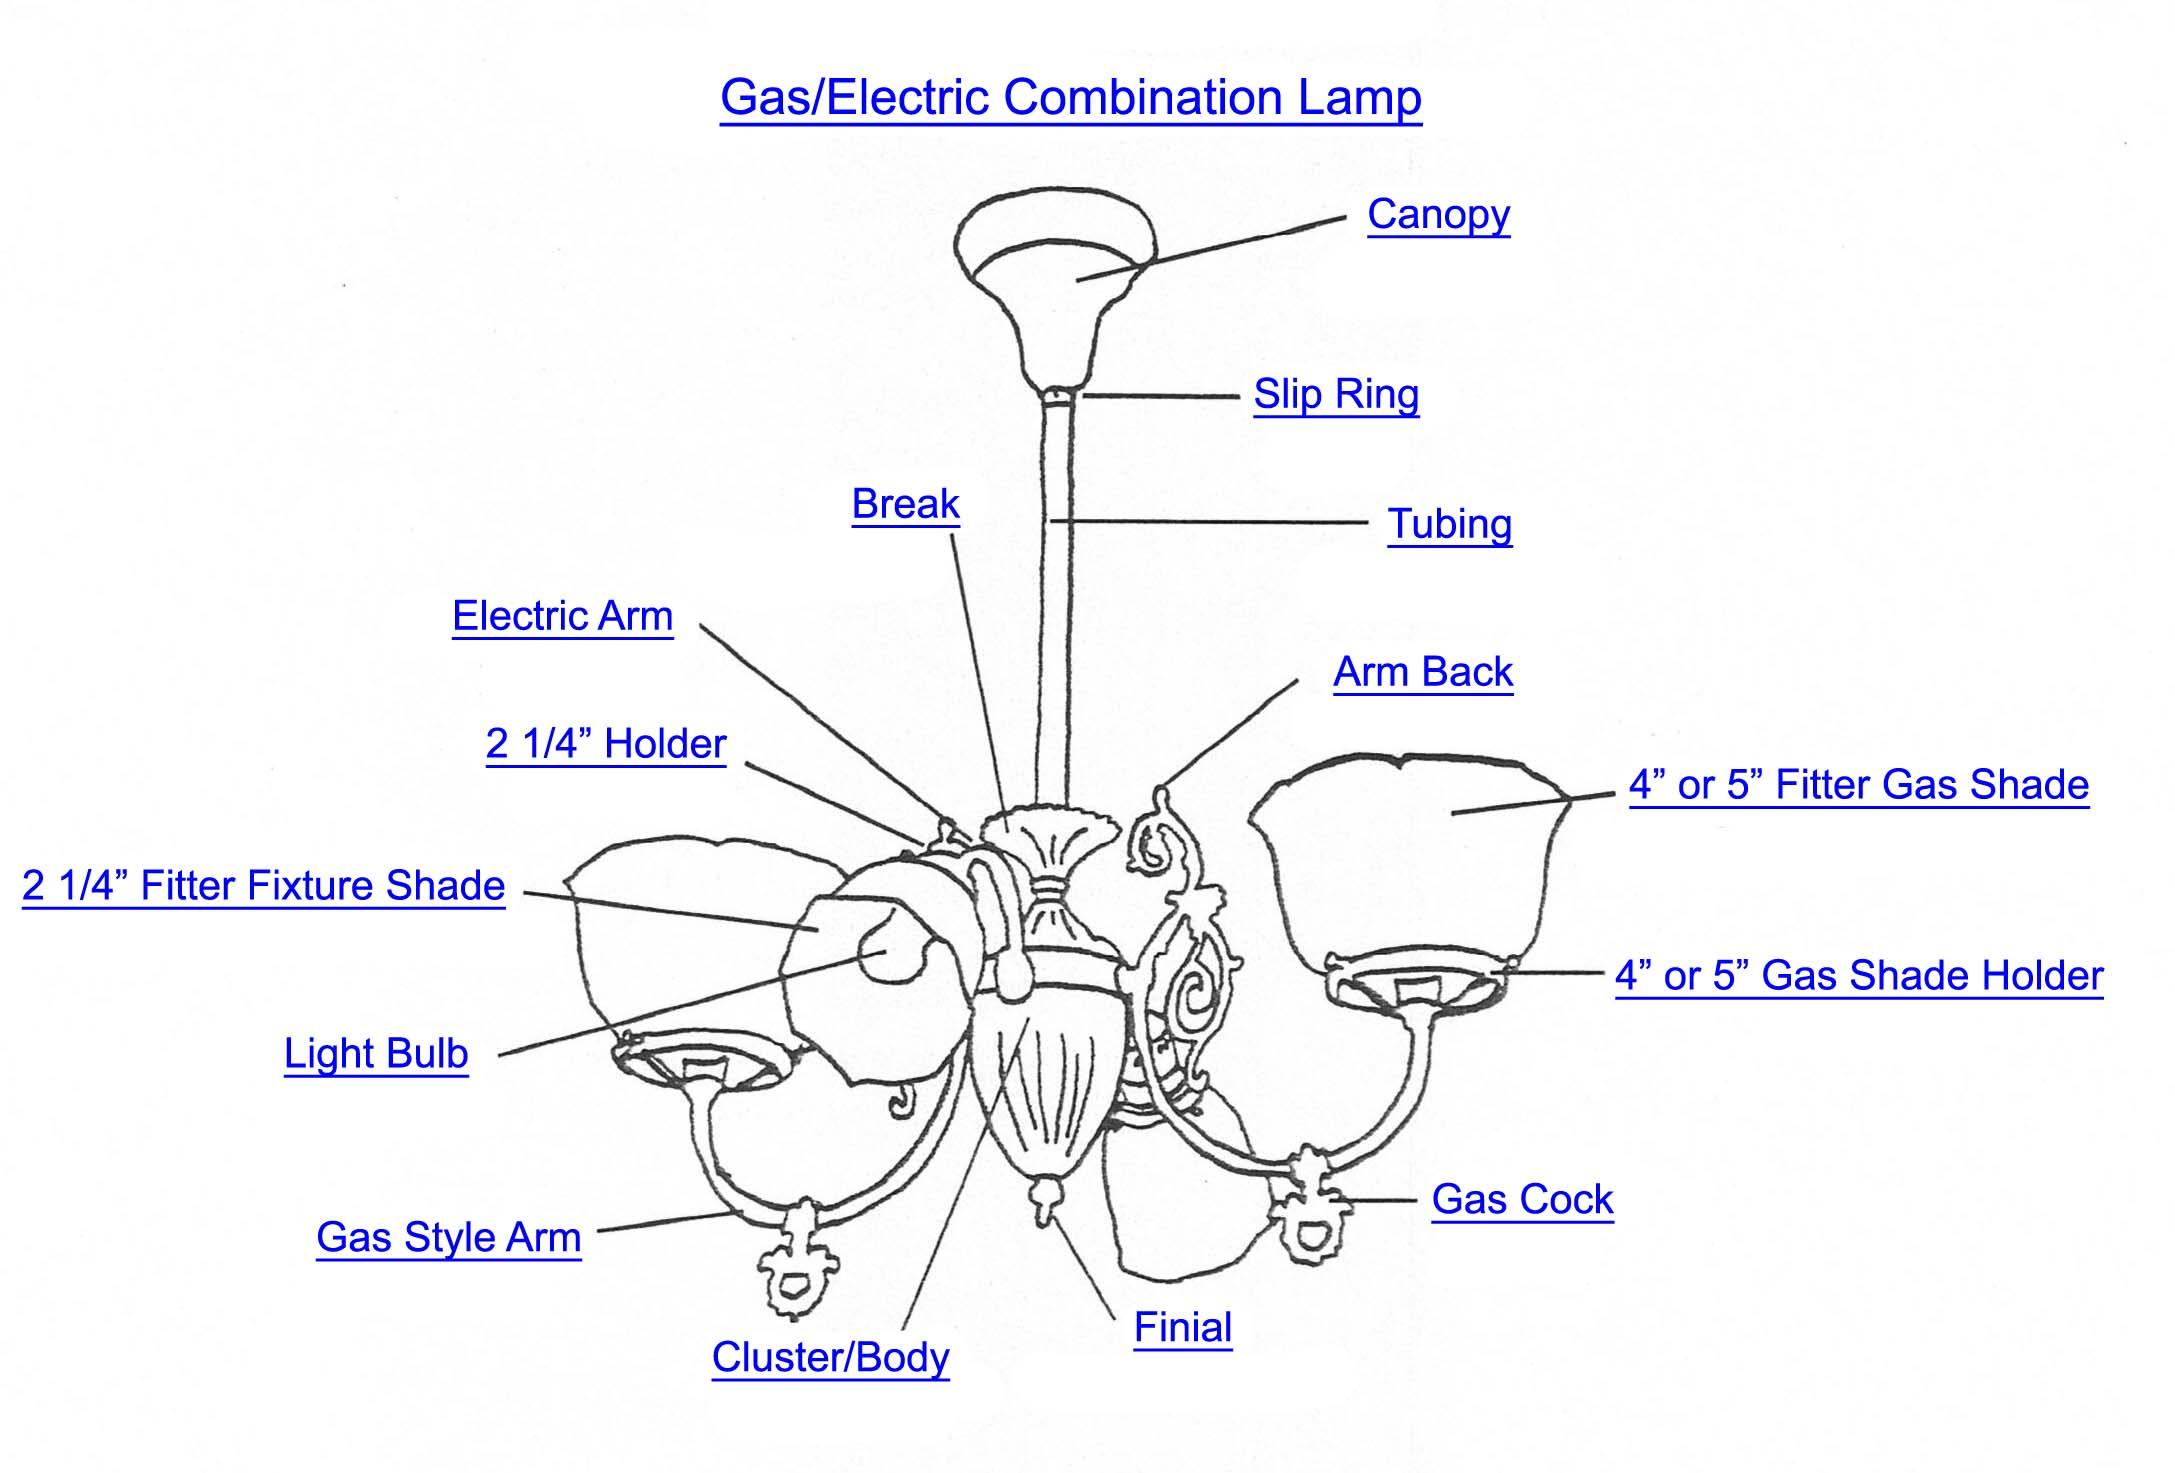 Gas electric combination lamp part index aloadofball